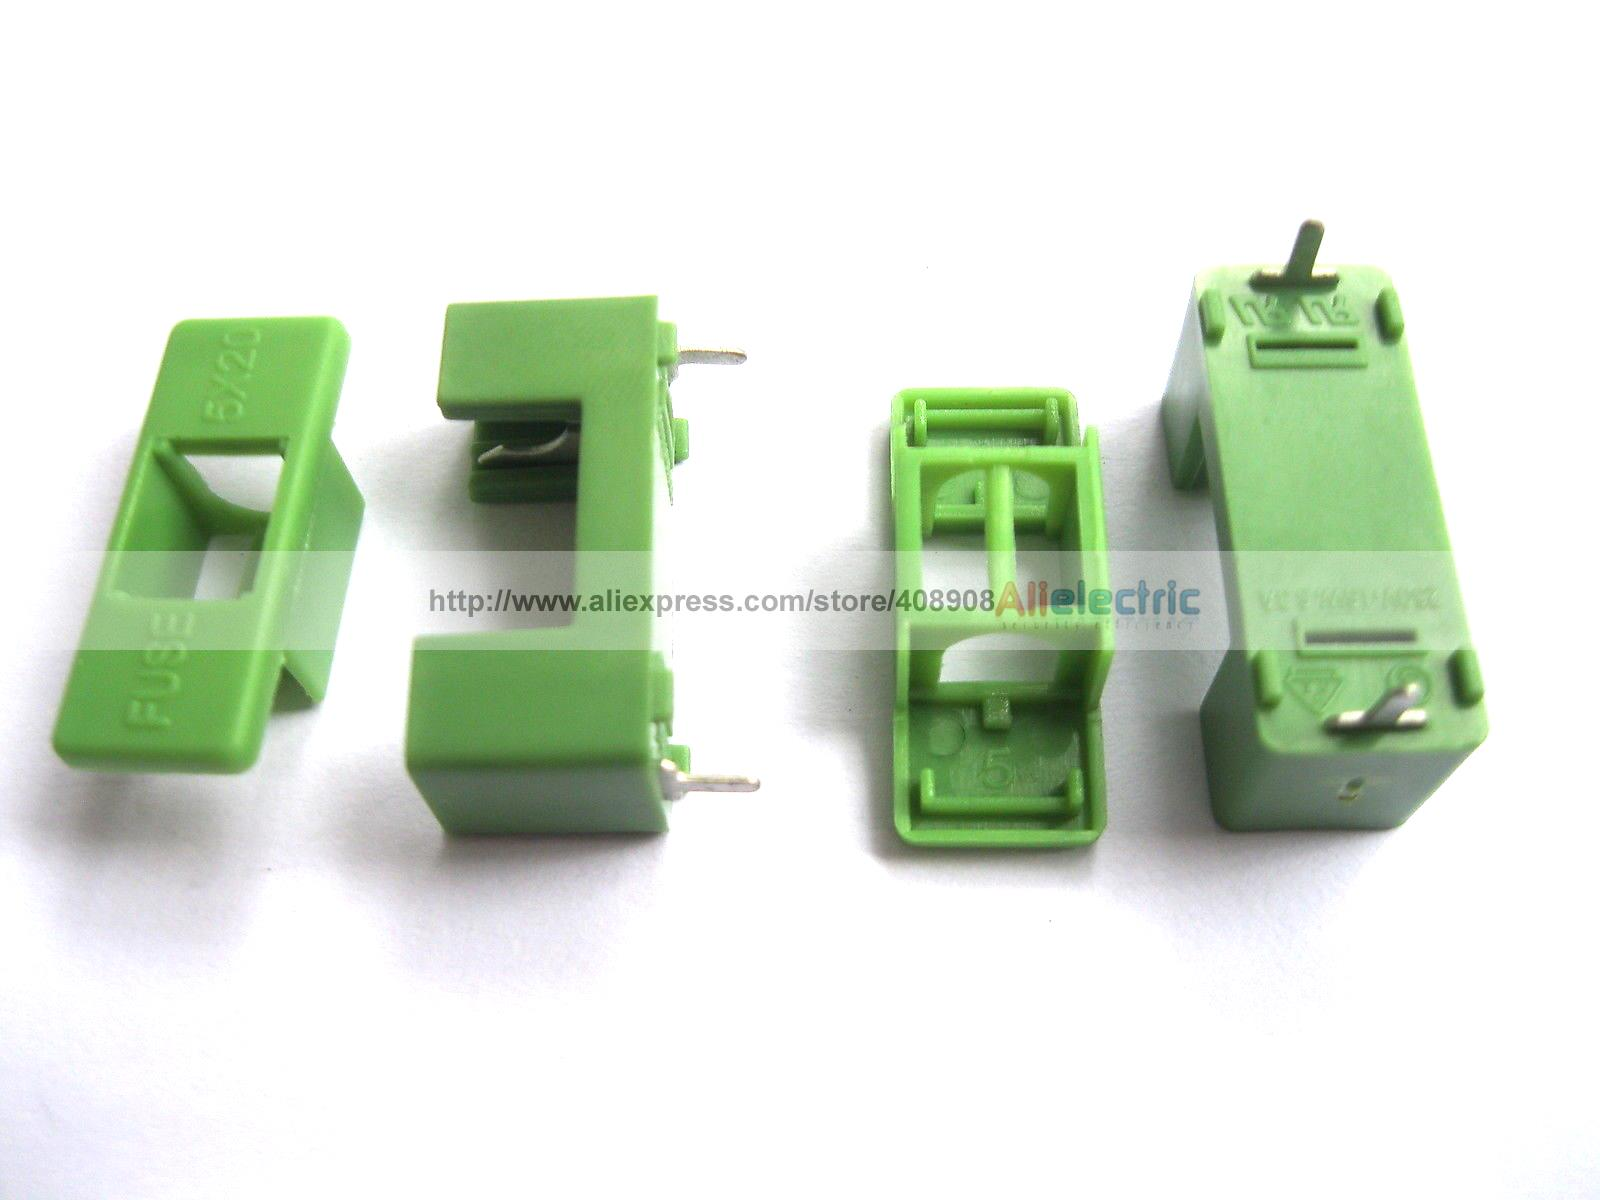 100 Pcs PTF 7 DIP Fuse Holder 6 3A 250V Used for 5x20 Green Color tny280pn dip 7